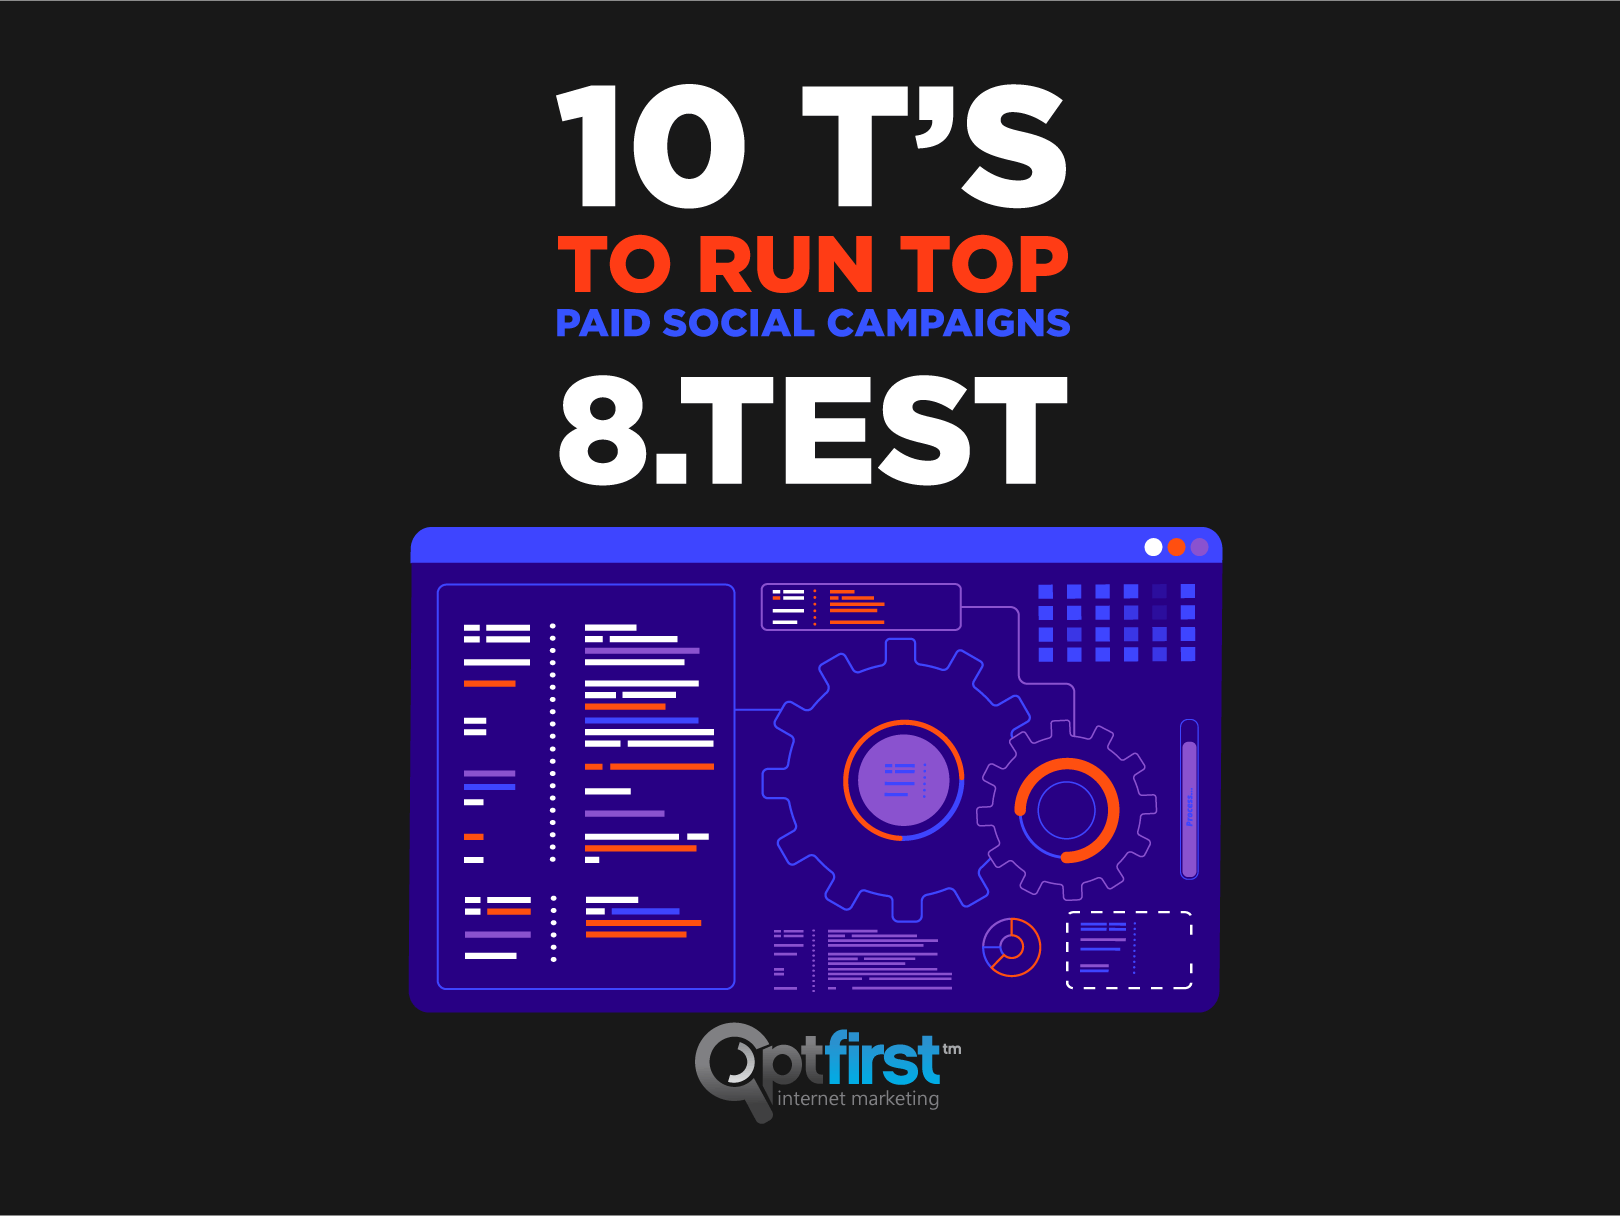 10 T's to Run Top Paid Social Campaigns, Step 8: Test